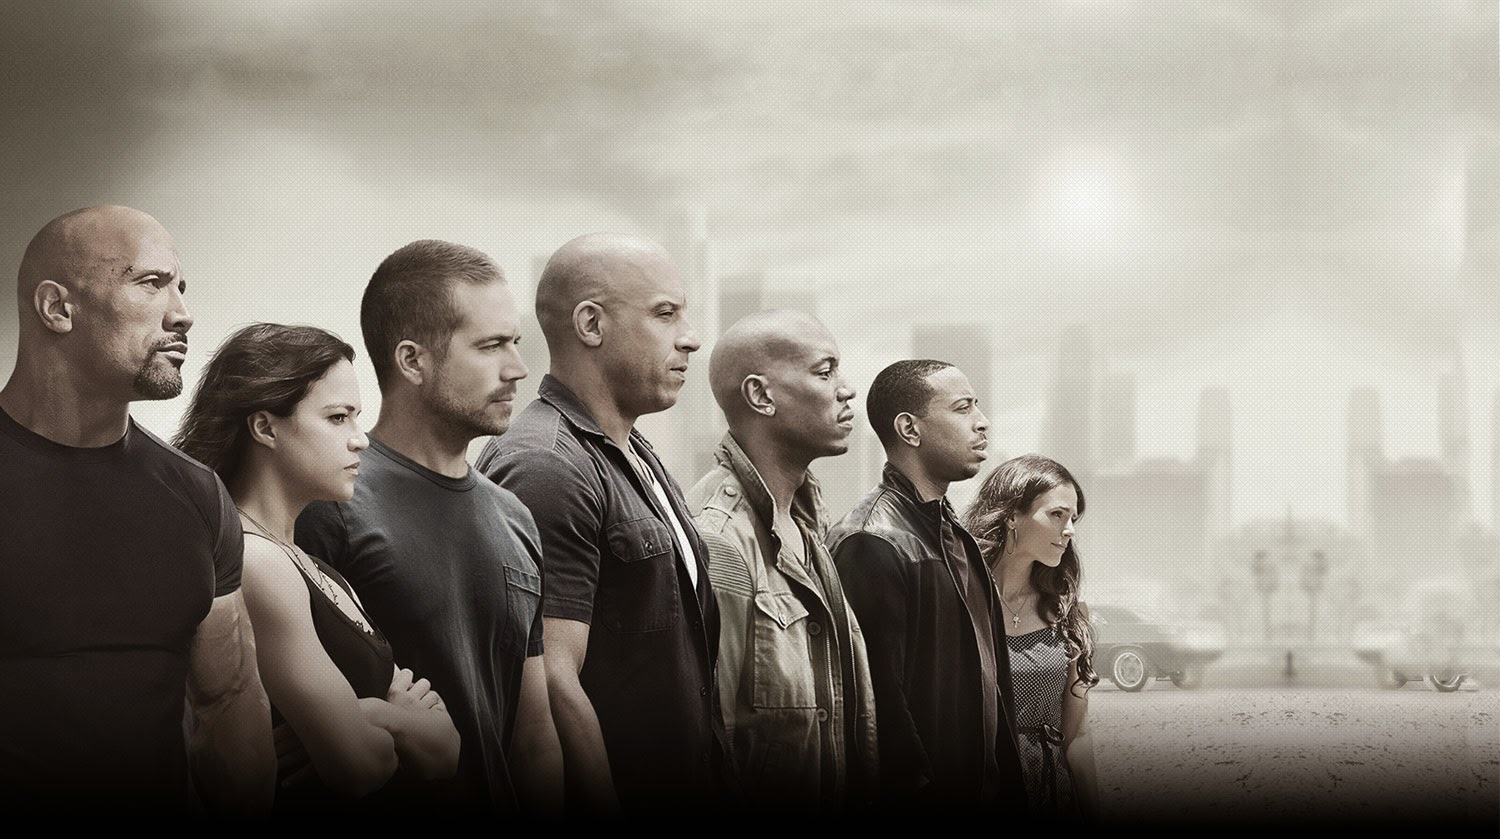 watch fast and furious 7 full movie online download torrent